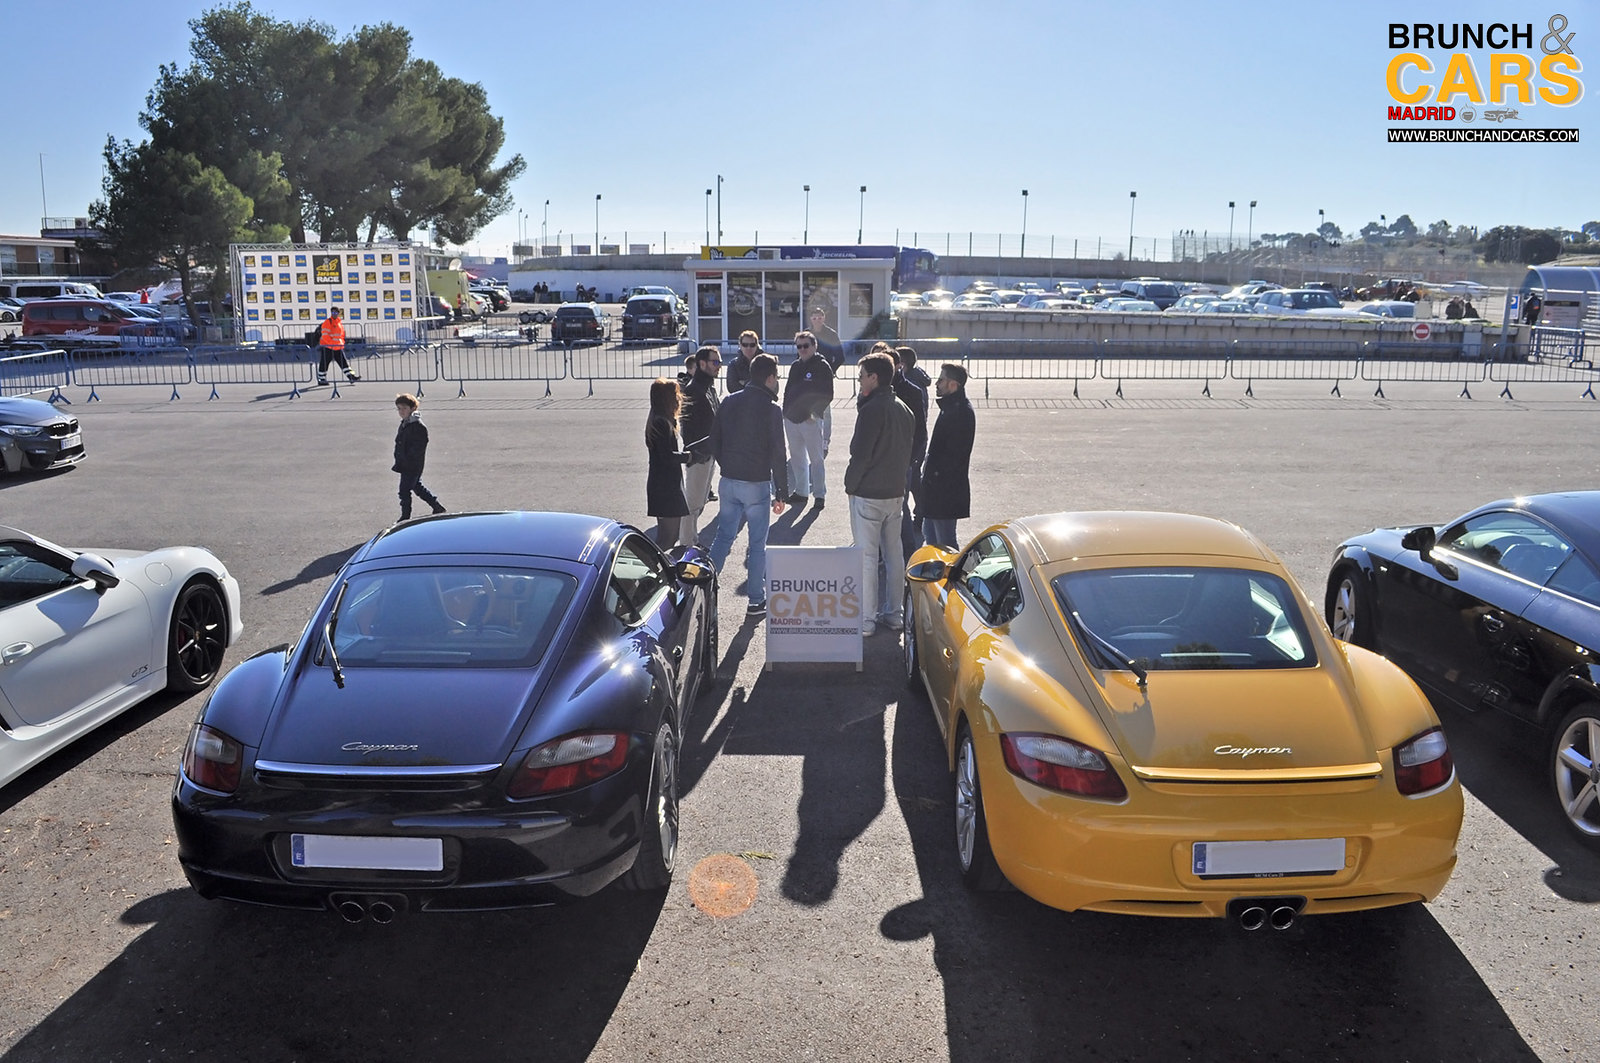 Brunch and Cars Madrid - Round 10